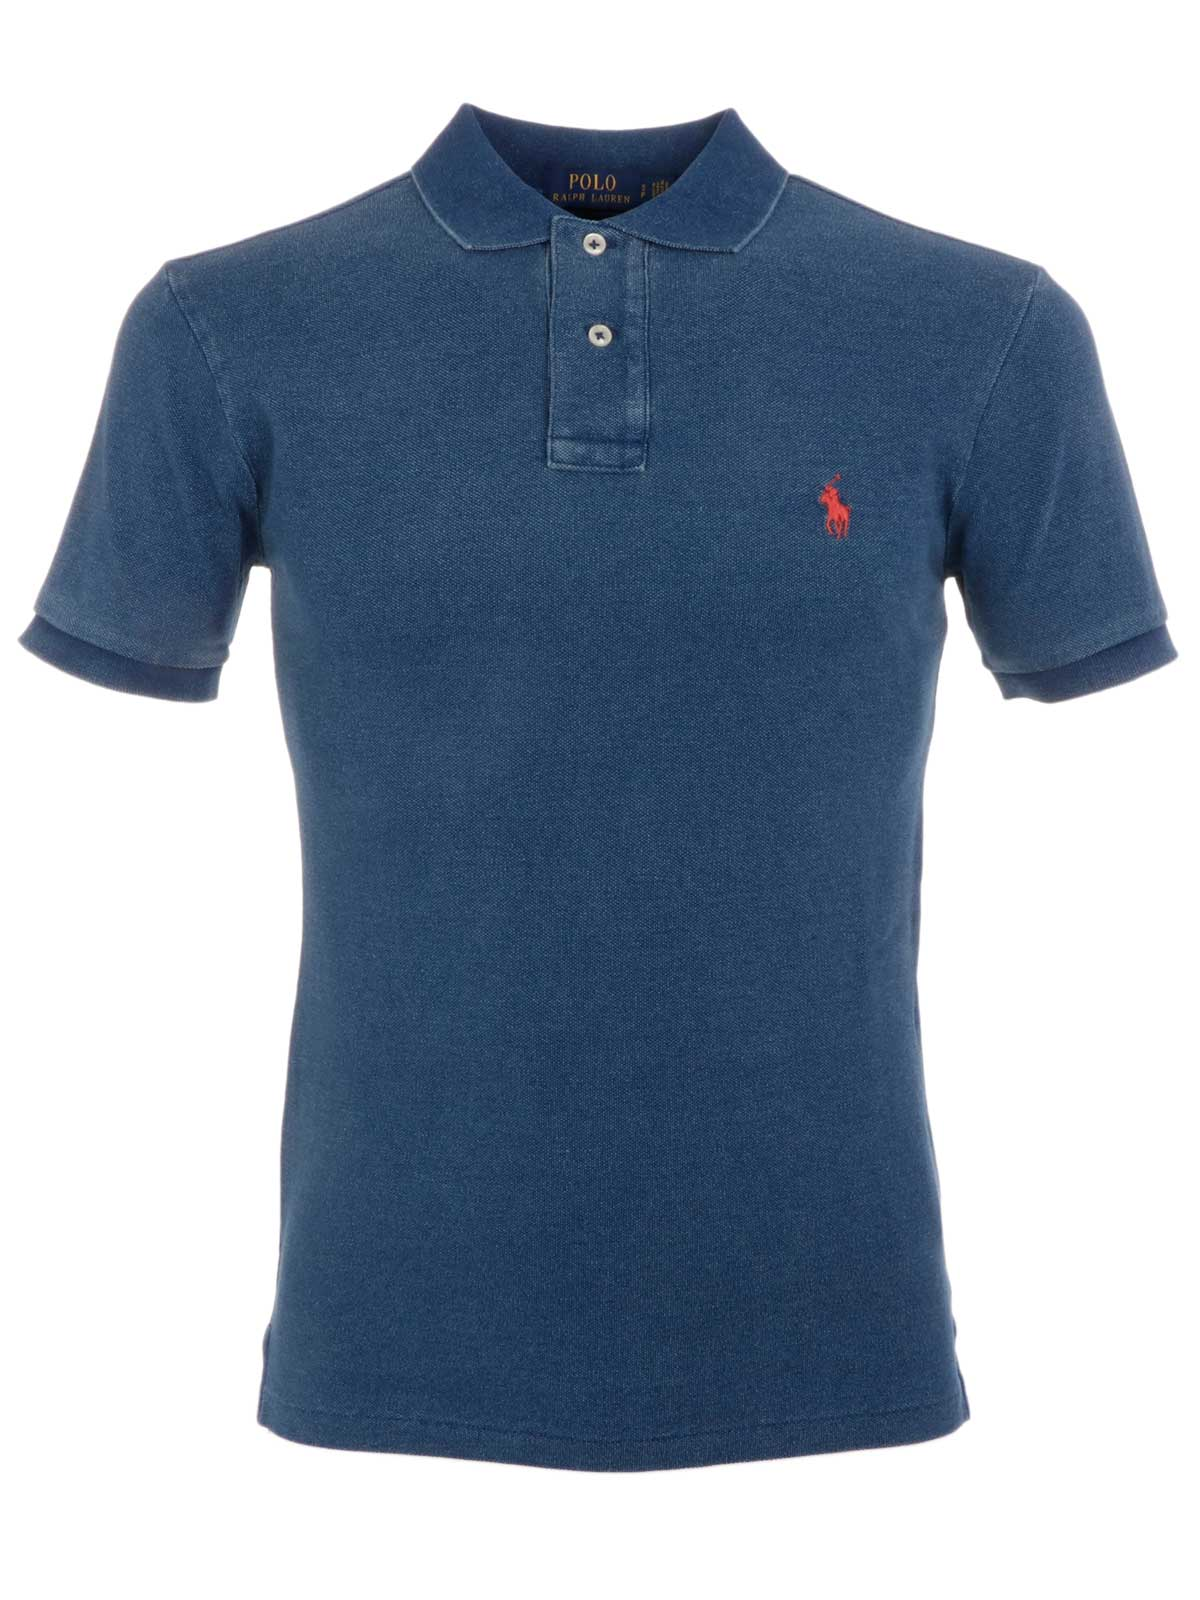 e50ed7701ae49 POLO RALPH LAUREN Men s Cotton Polo Shirt Washed Indigo ...